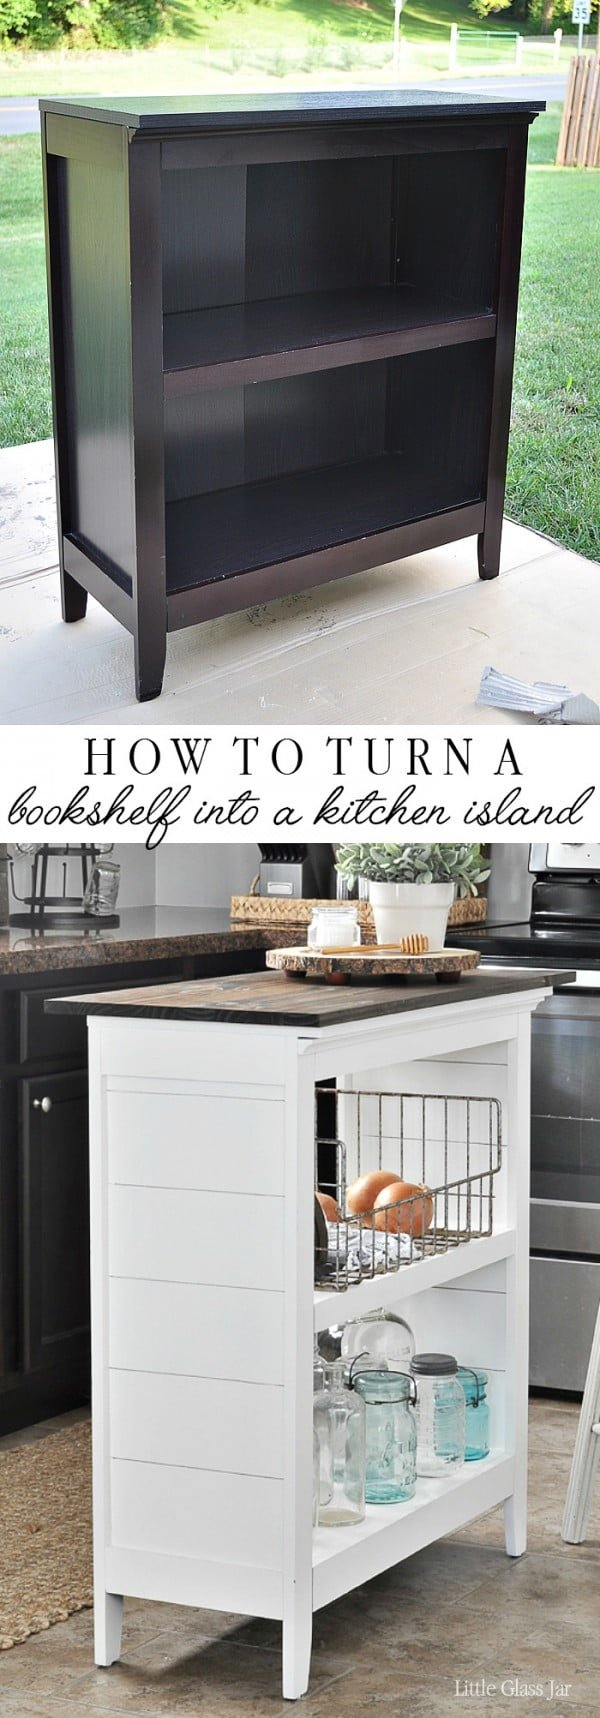 25 Easy DIY Kitchen Island Ideas That You Can Build on a Budget - Check out the tutorial on how to build a DIY kitchen island from a bookshelf